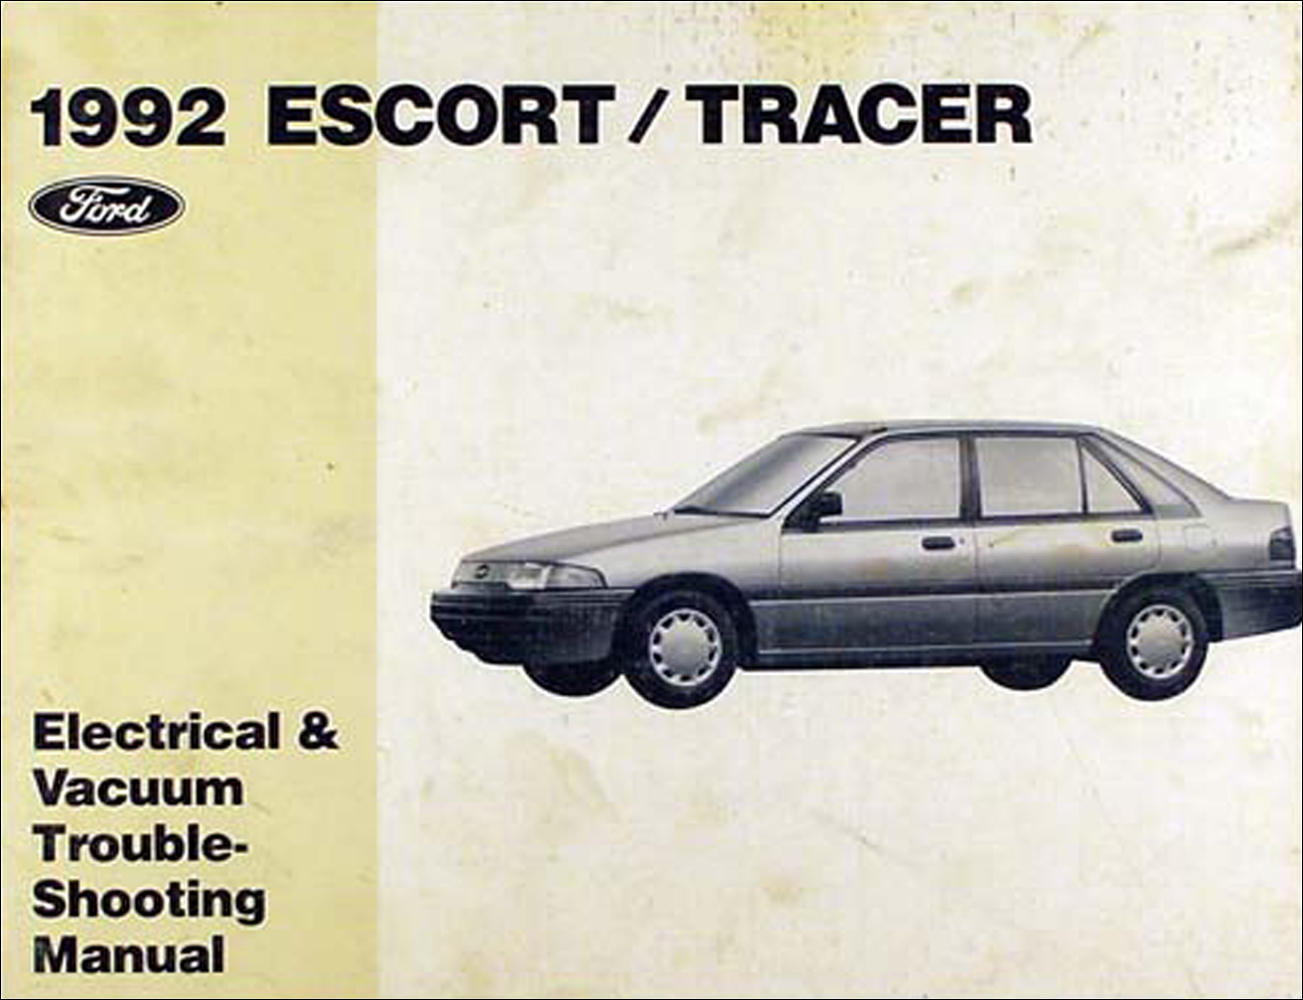 hight resolution of 1992 ford escort and mercury tracer electrical troubleshooting manual